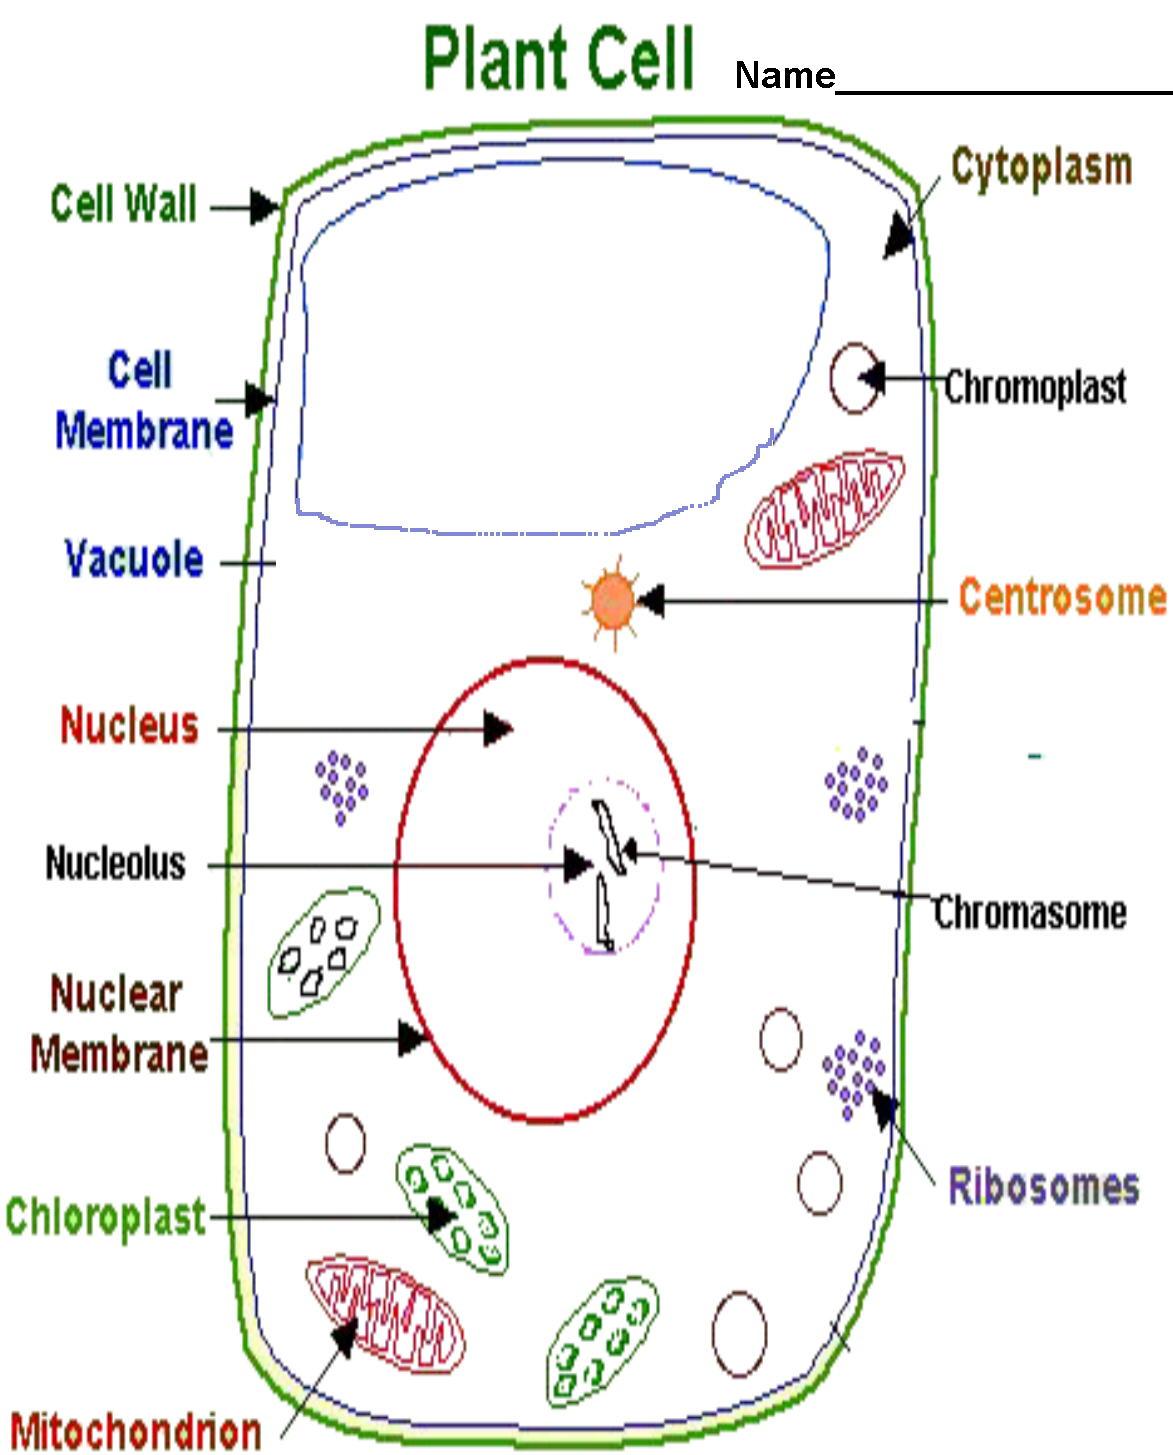 Plant Cell Drawing With Labels At Free For Detailed Diagram Labeled 1173x1455 Collection Of A High